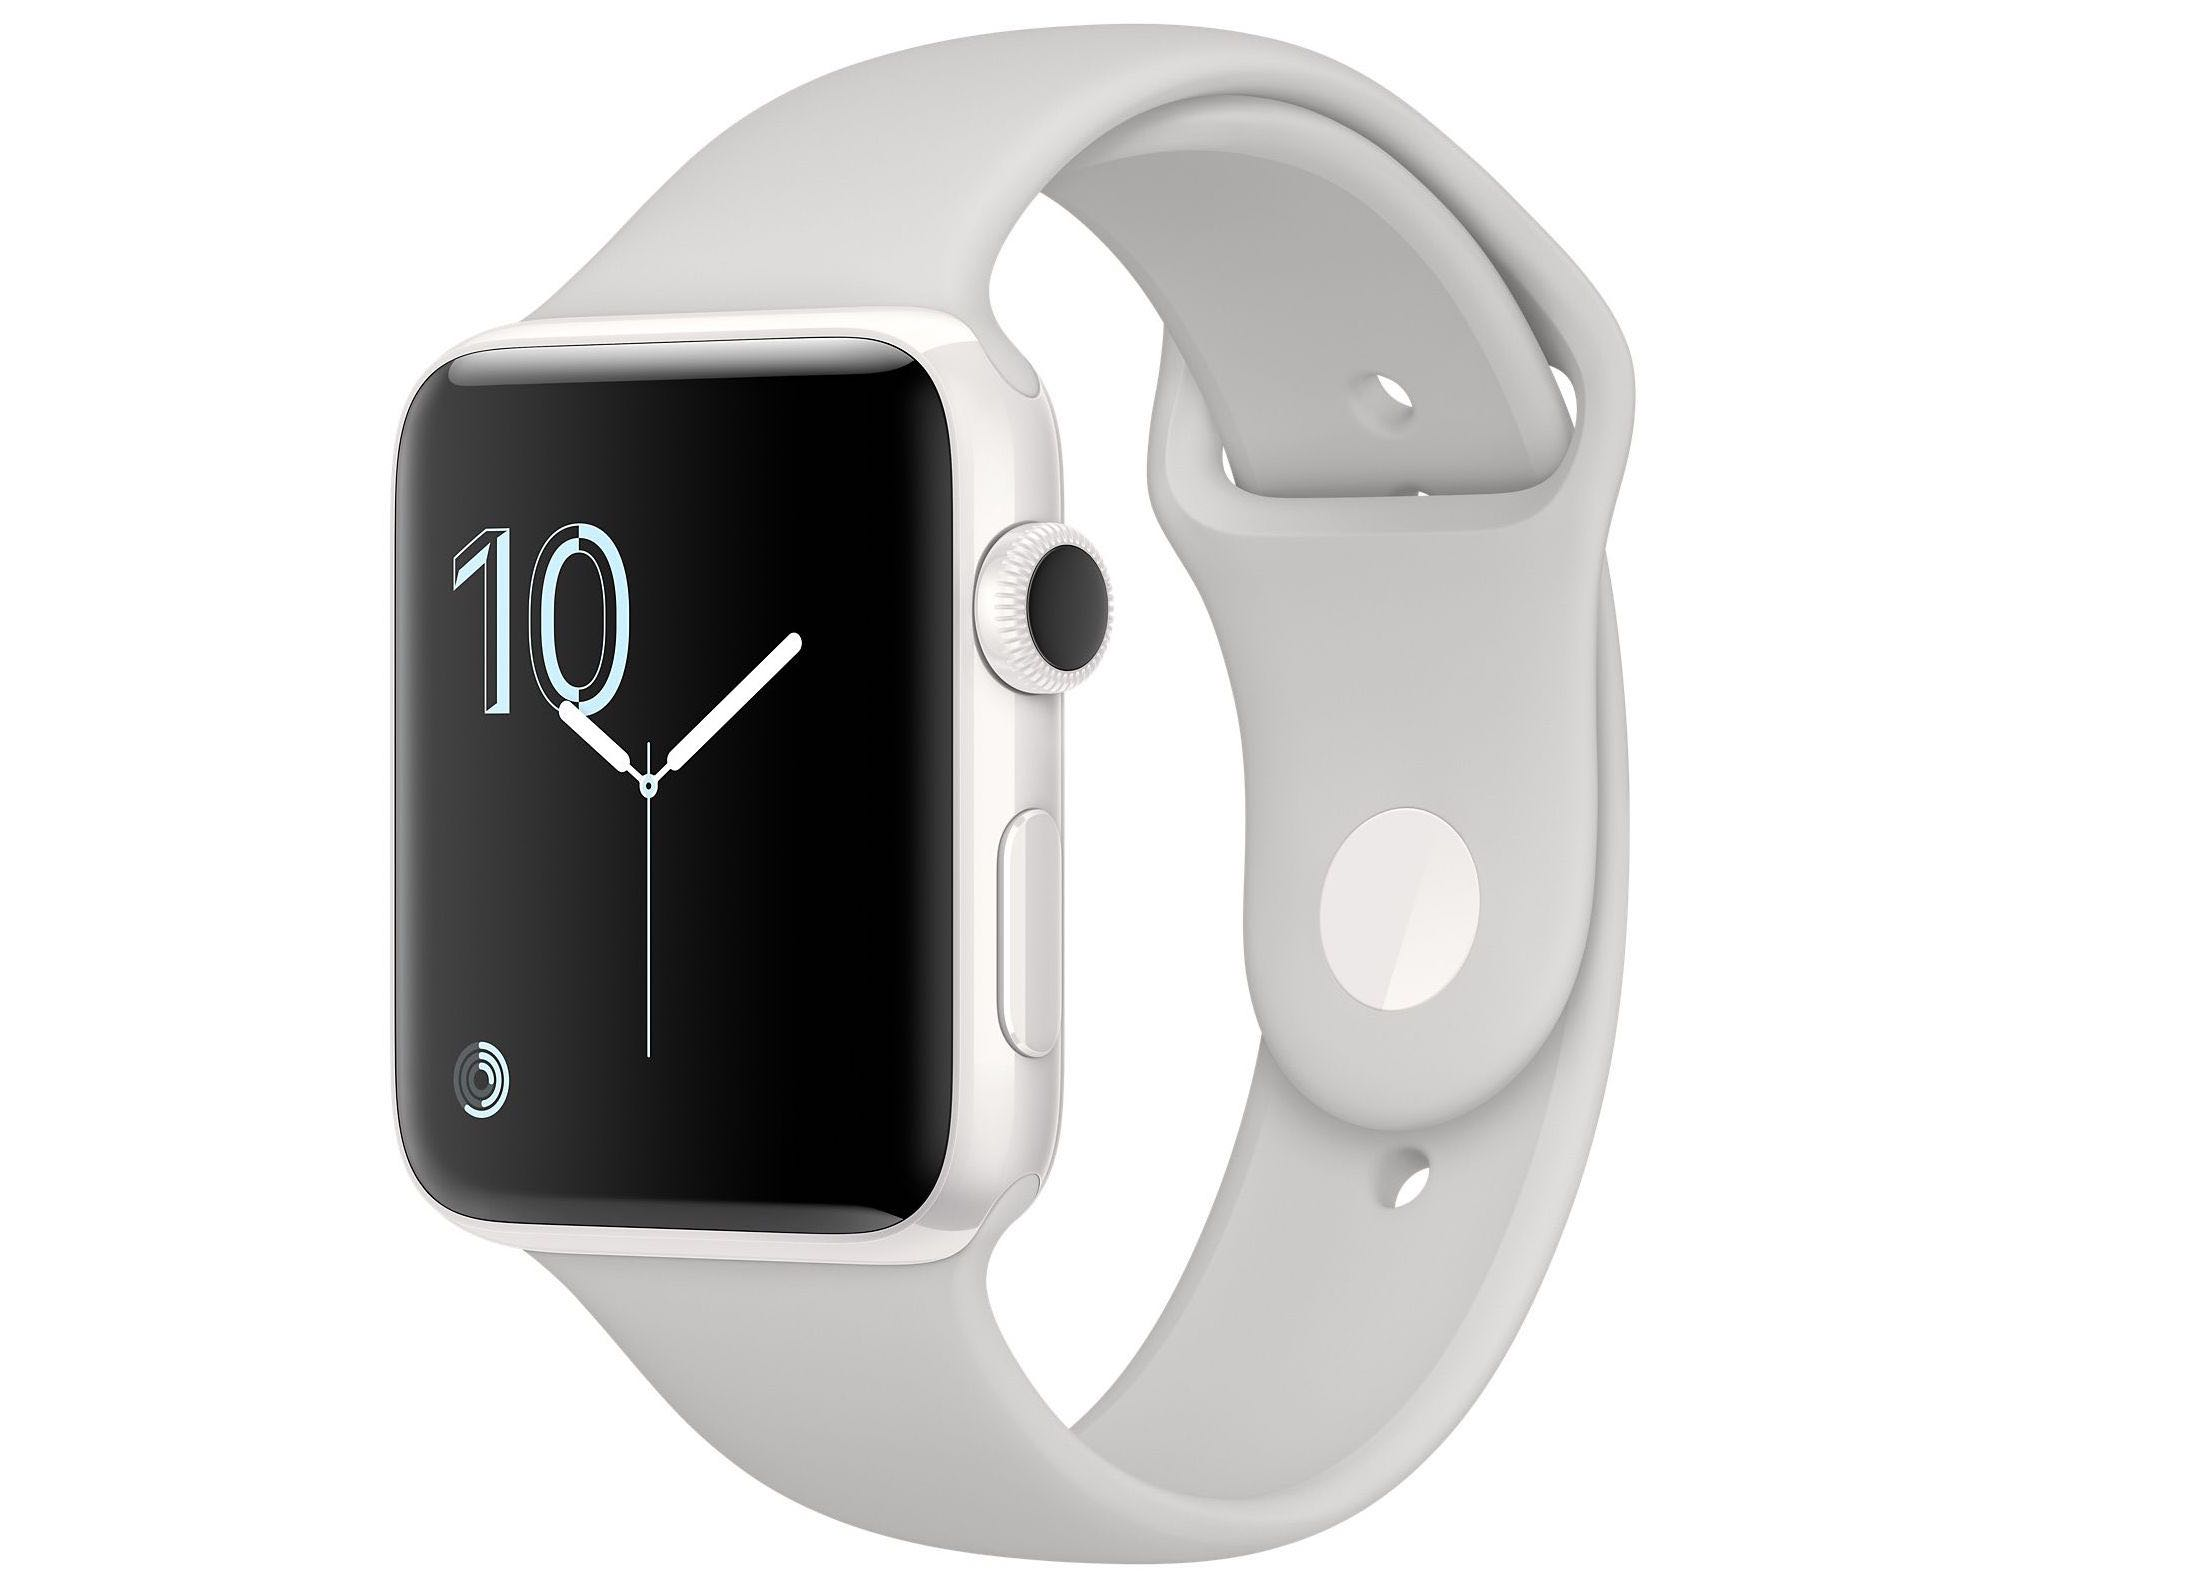 Apple Watch Seires 2 Russia Buy Price Shop 44